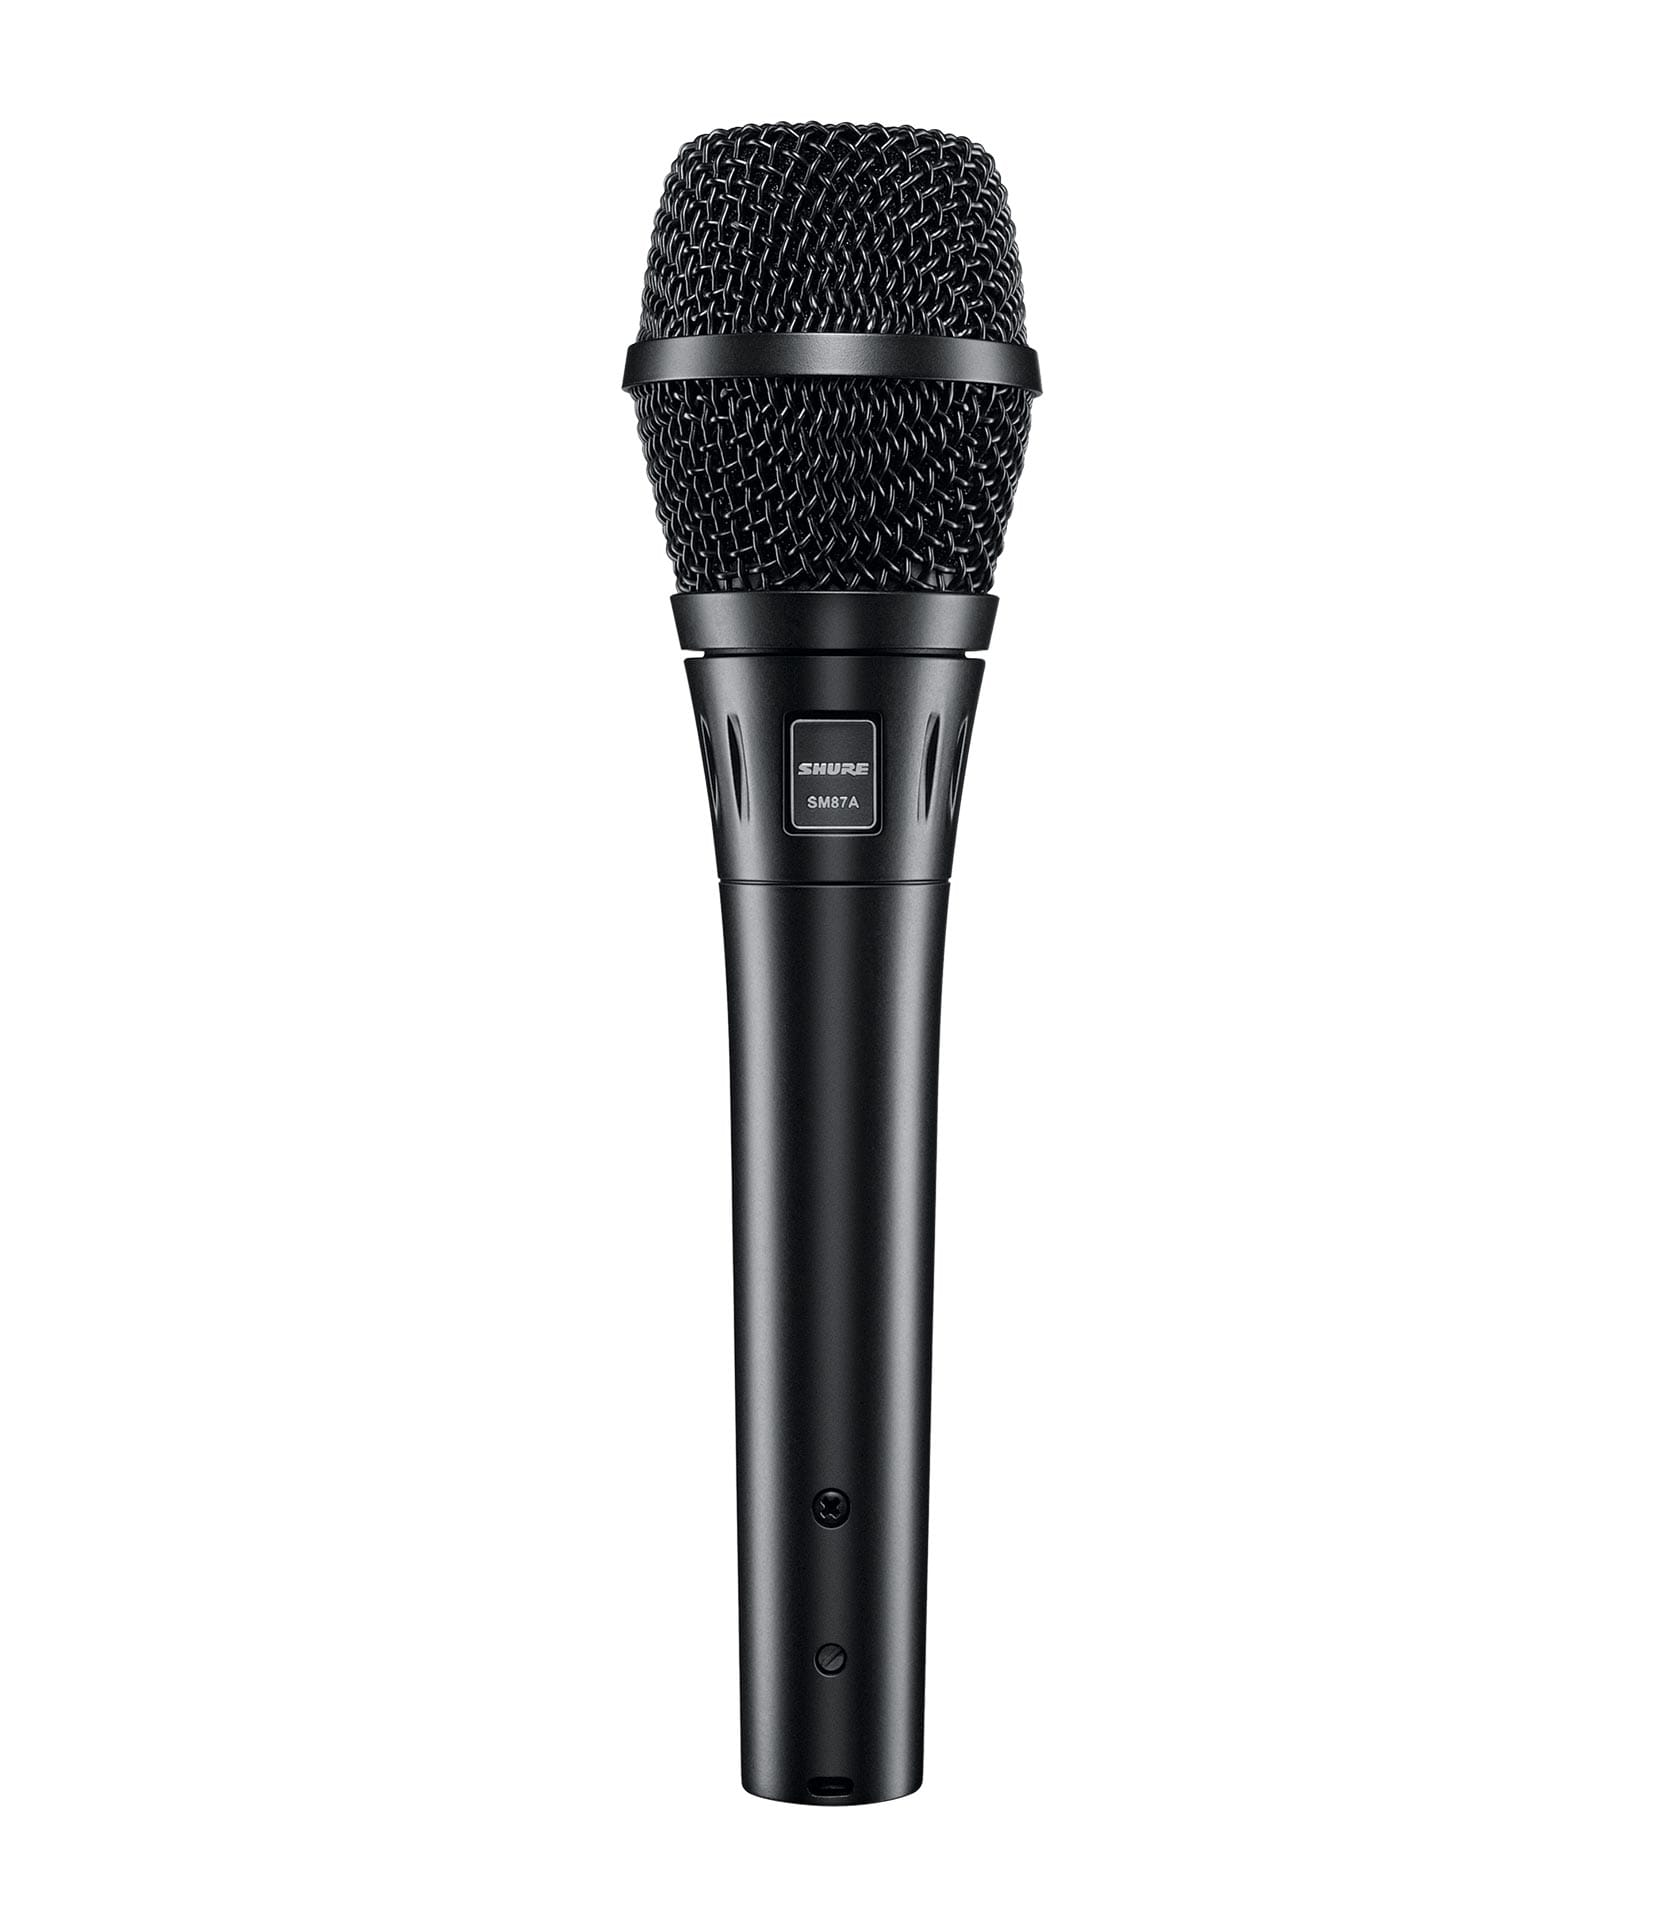 Buy Shure - SM87A Supercardiod Condenser Rugged Vocal Mic